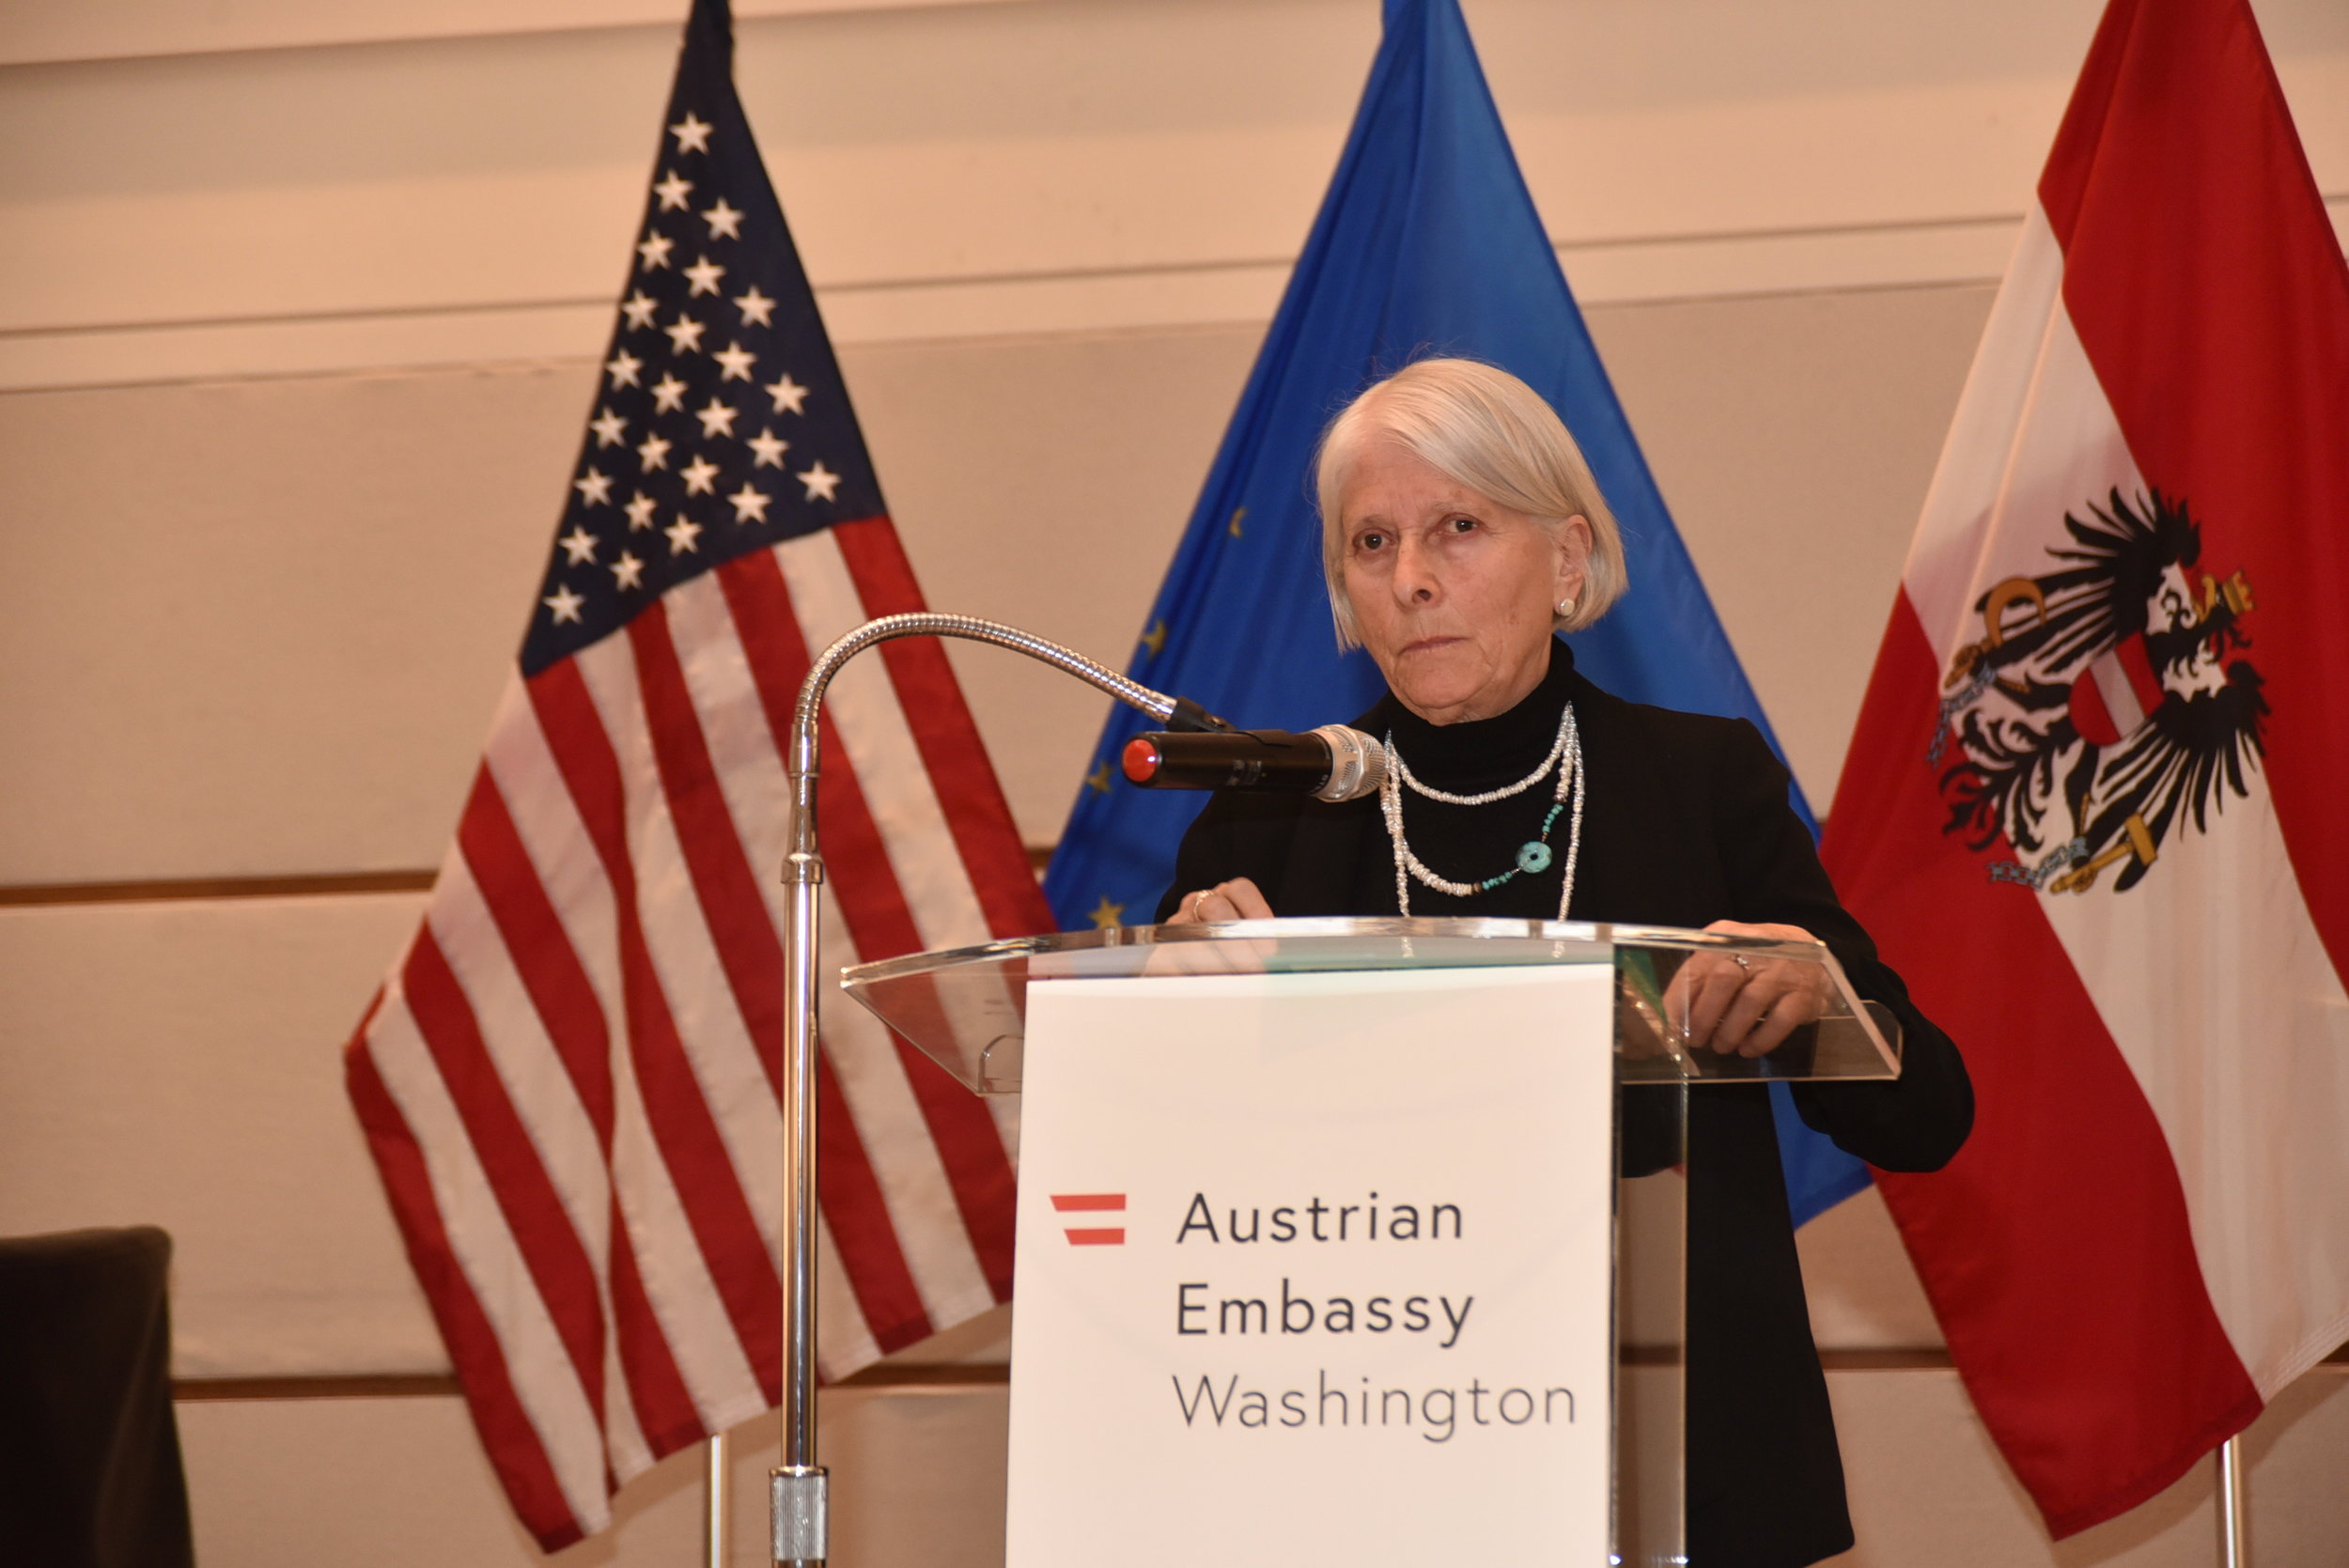 """By your very presence here this evening, and your support of the Ruth Maier exhibition in our nation's capital, you demonstrate unequivocally that you understand the tragedy of the Holocaust."" Dr. Altman speaking on the opening night.  Read her full speech here"